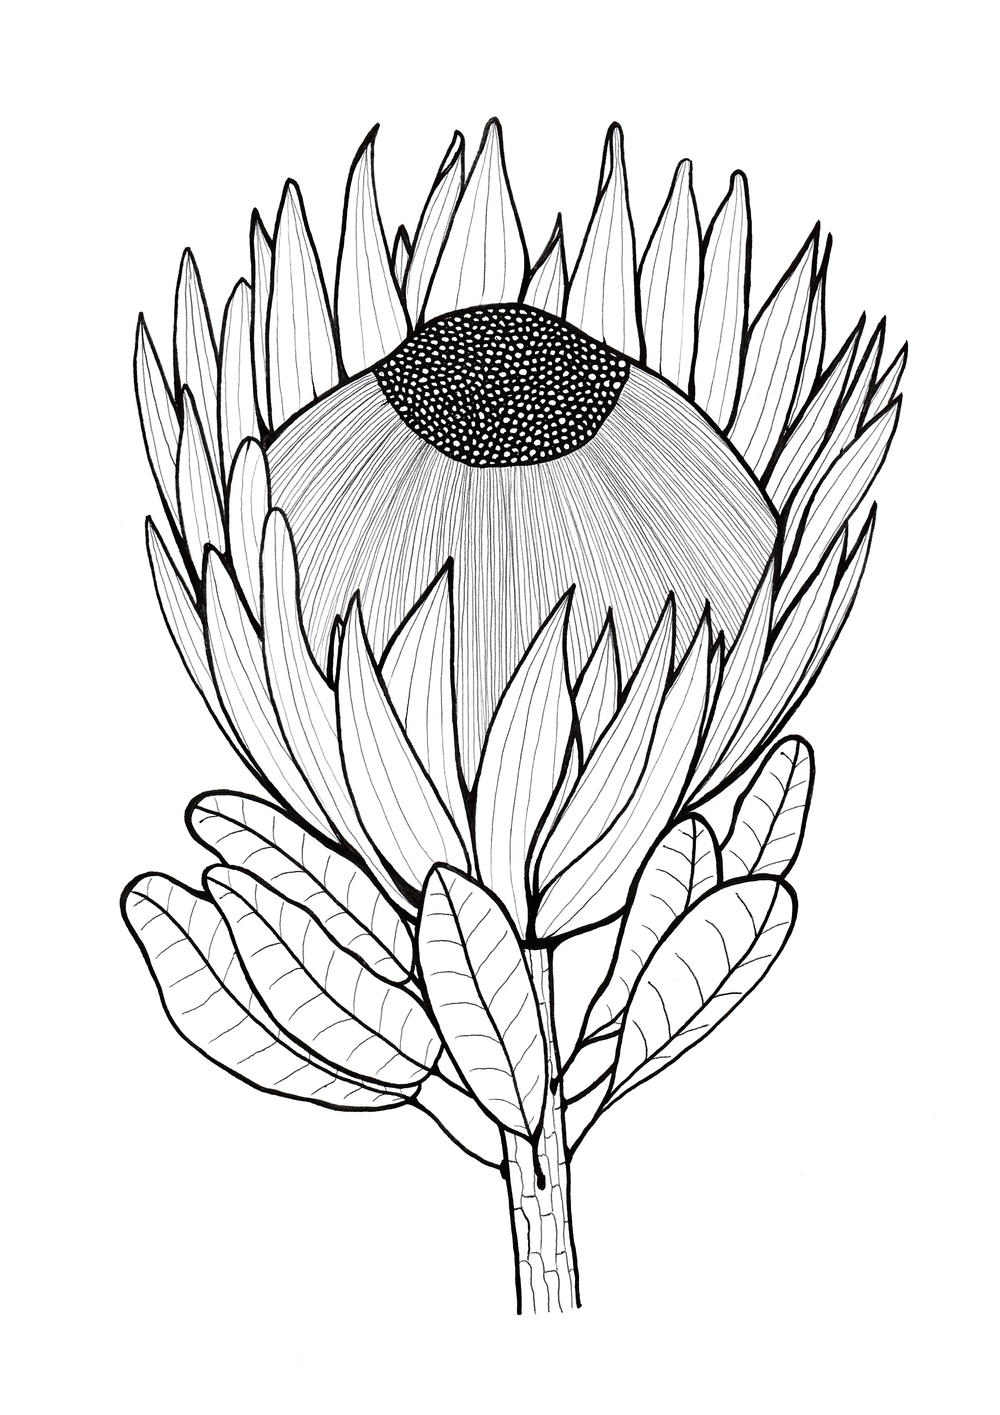 Glorious Protea Flowers to Color AllFreeHolidayCrafts